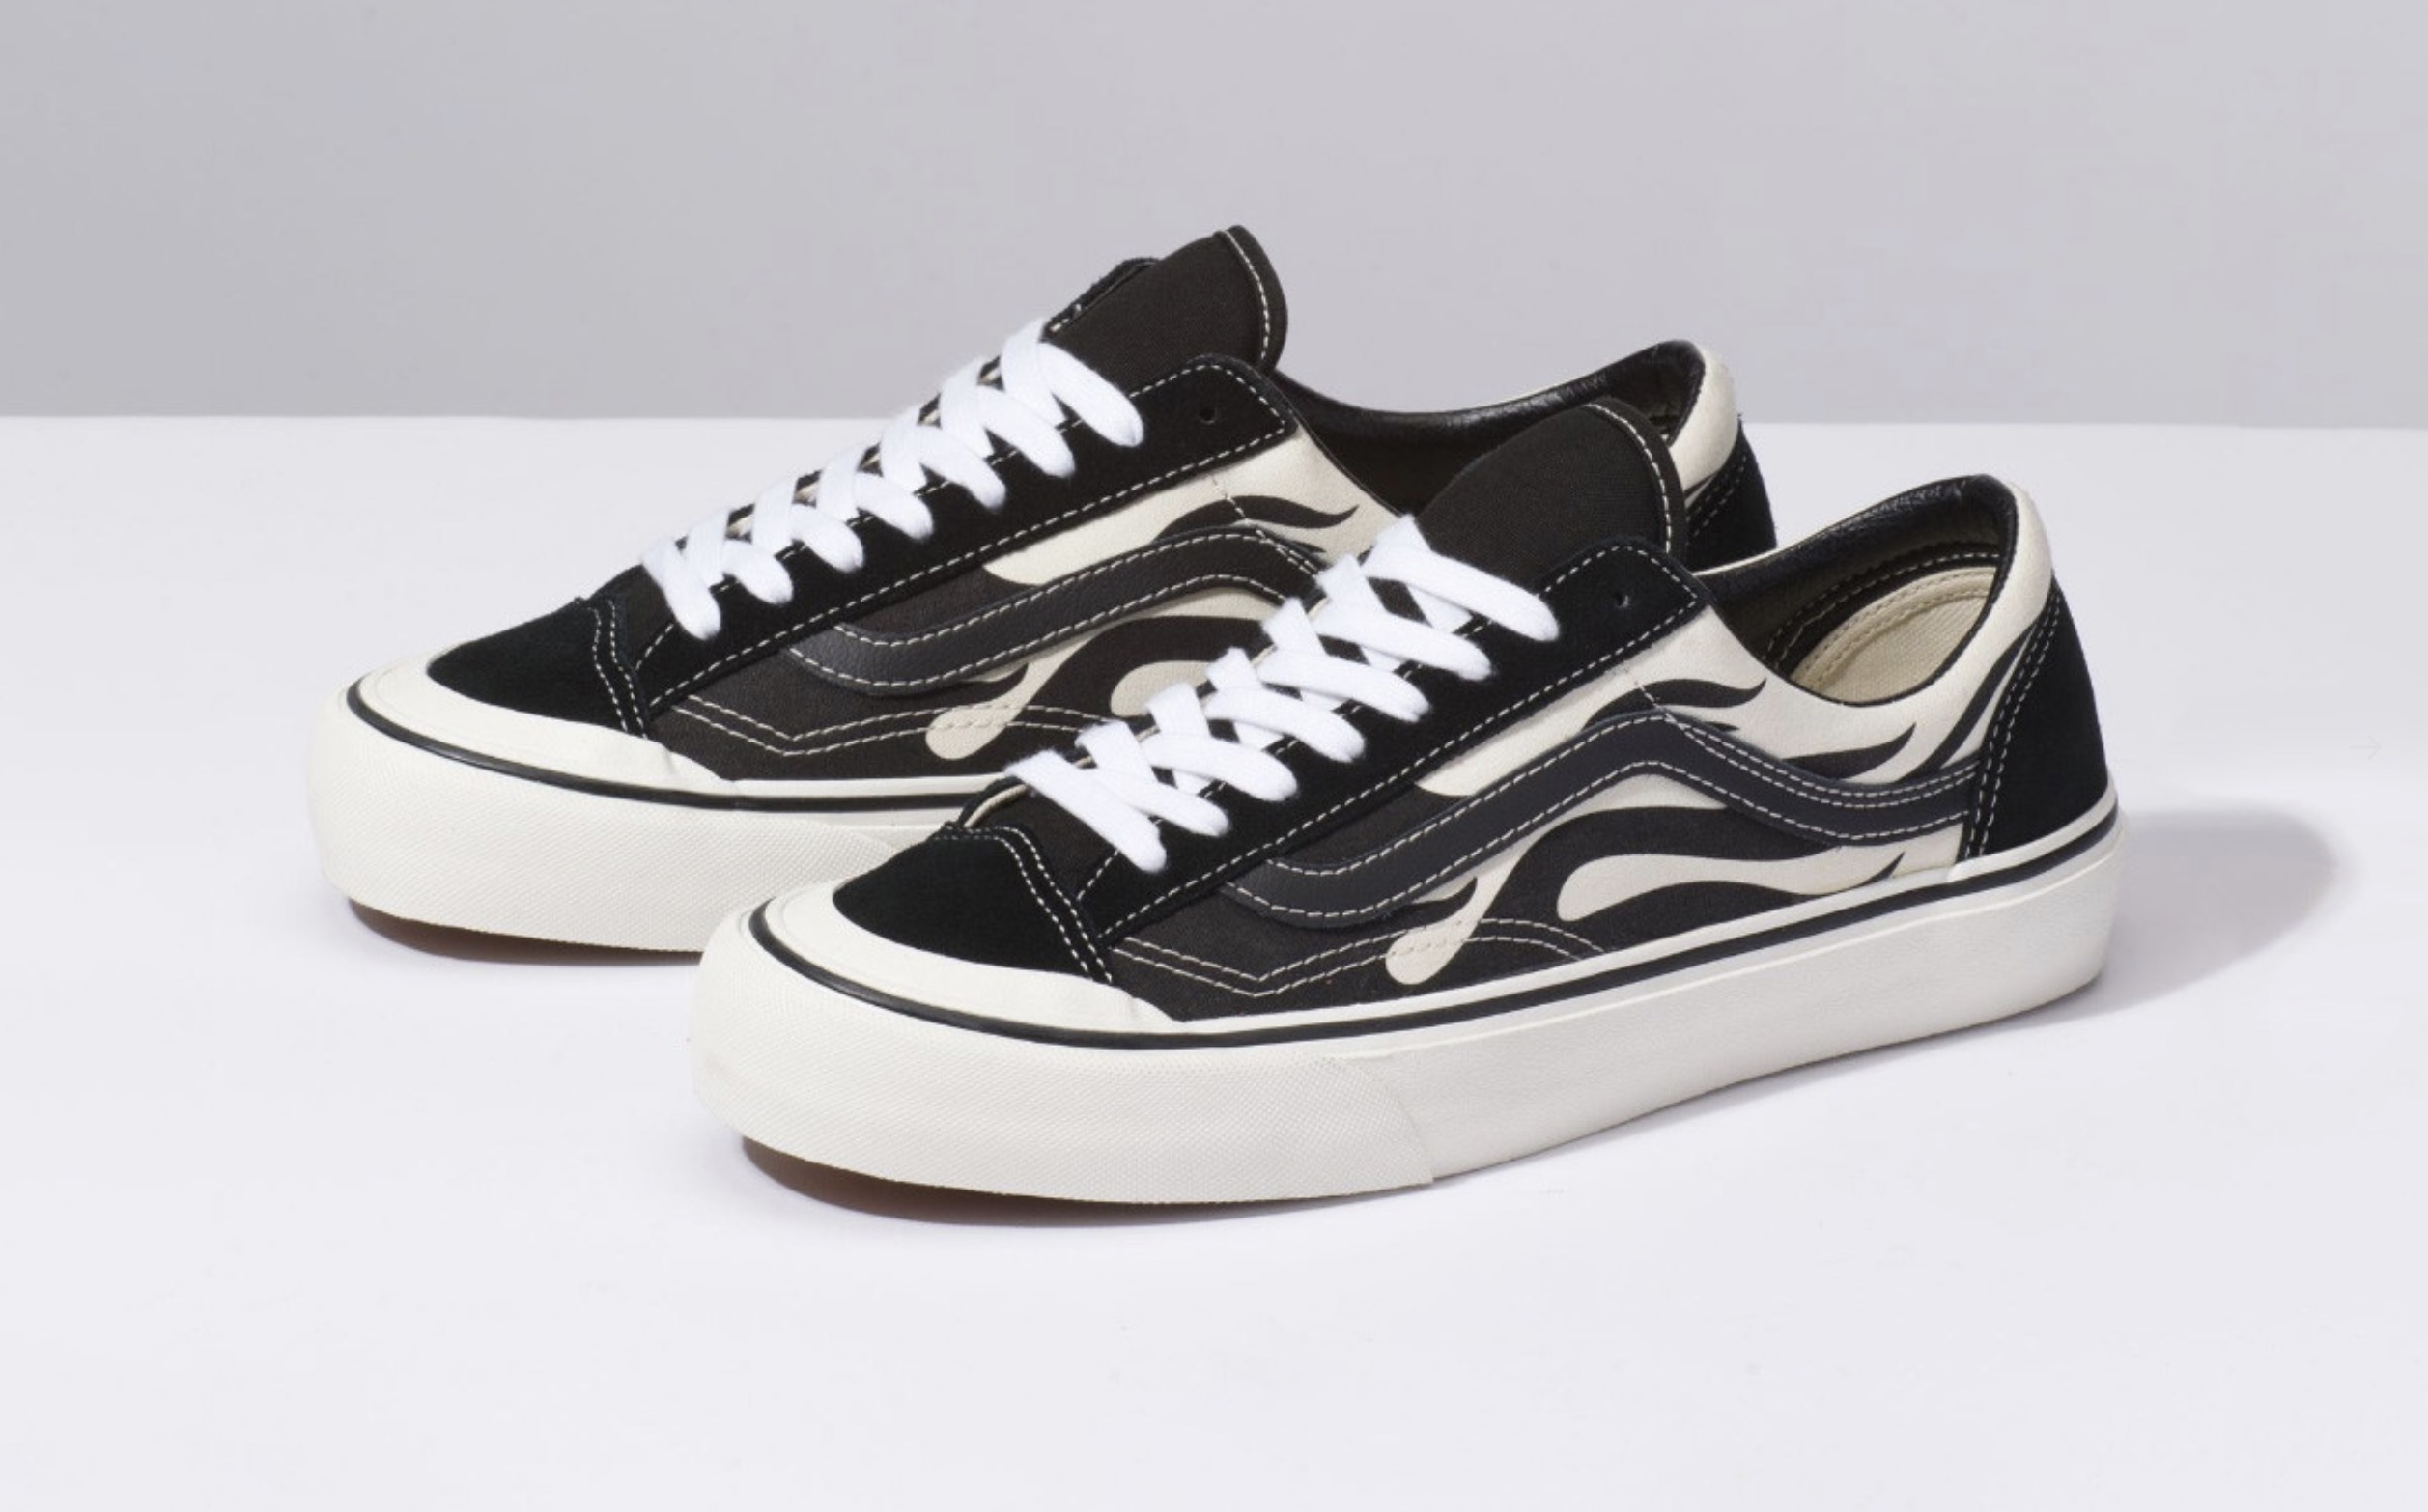 Vans Add Monochrome Flames To Their Newest Silhouette 2